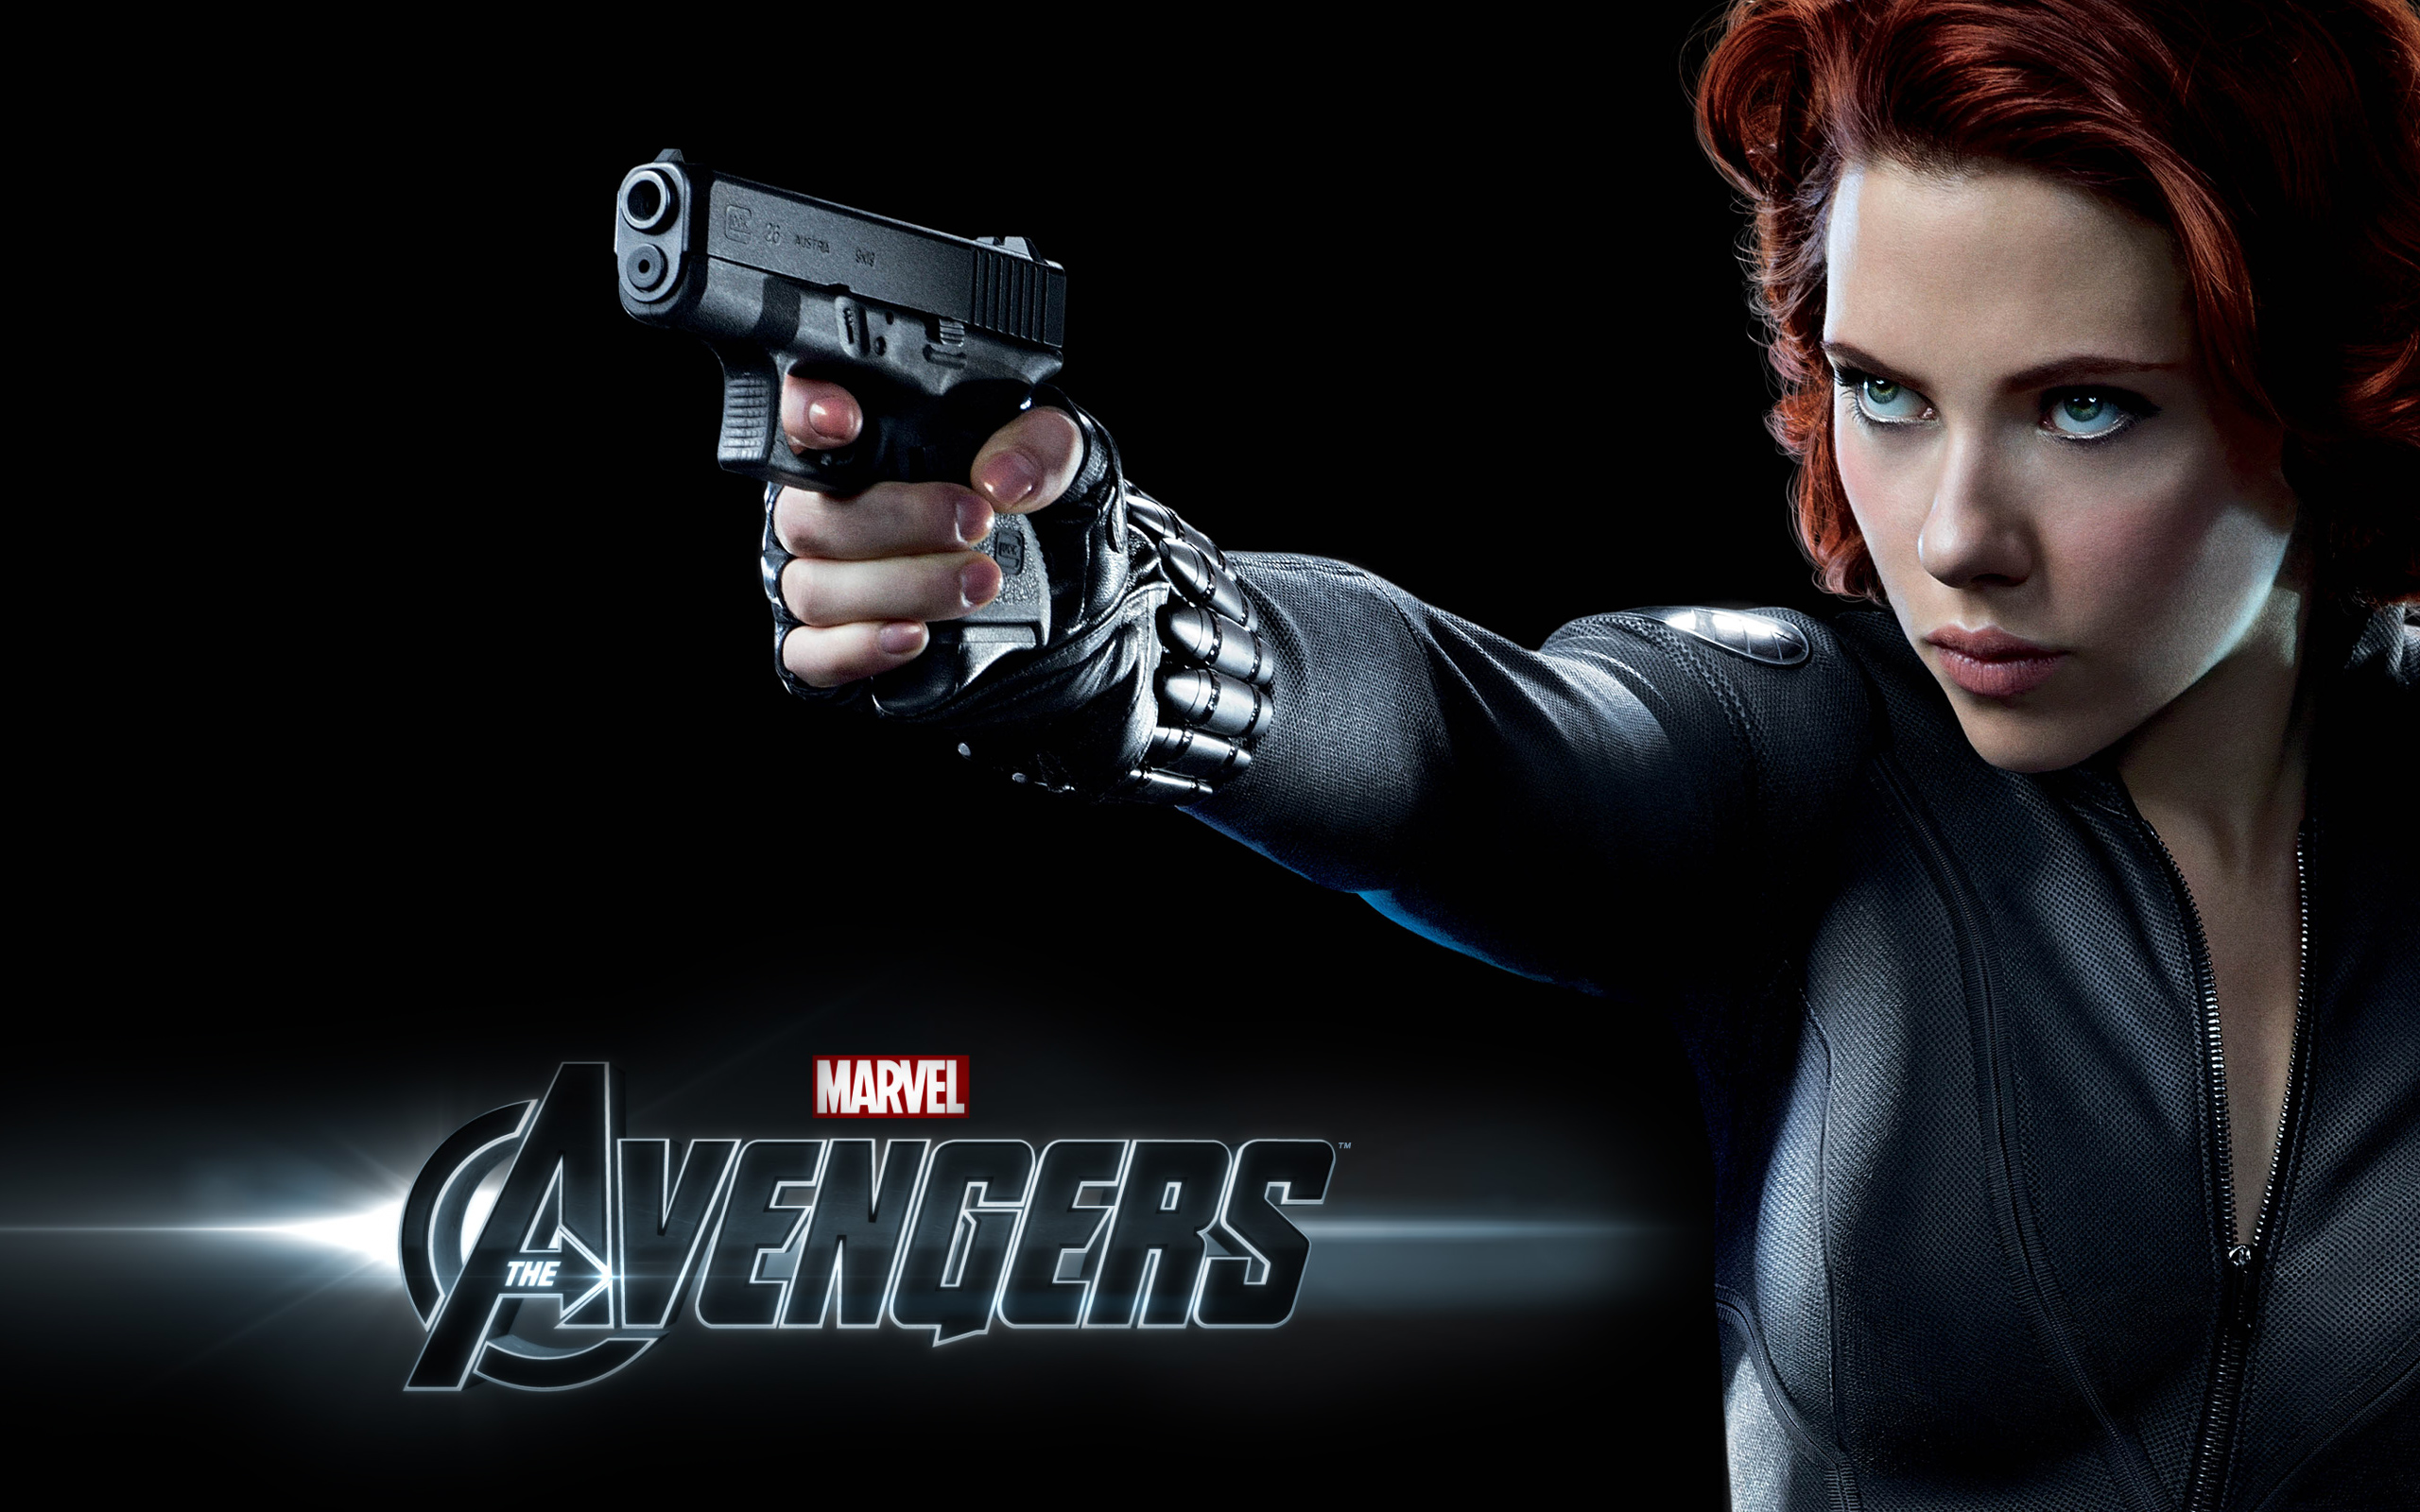 Scarlett Johansson in The Avengers 963.95 Kb